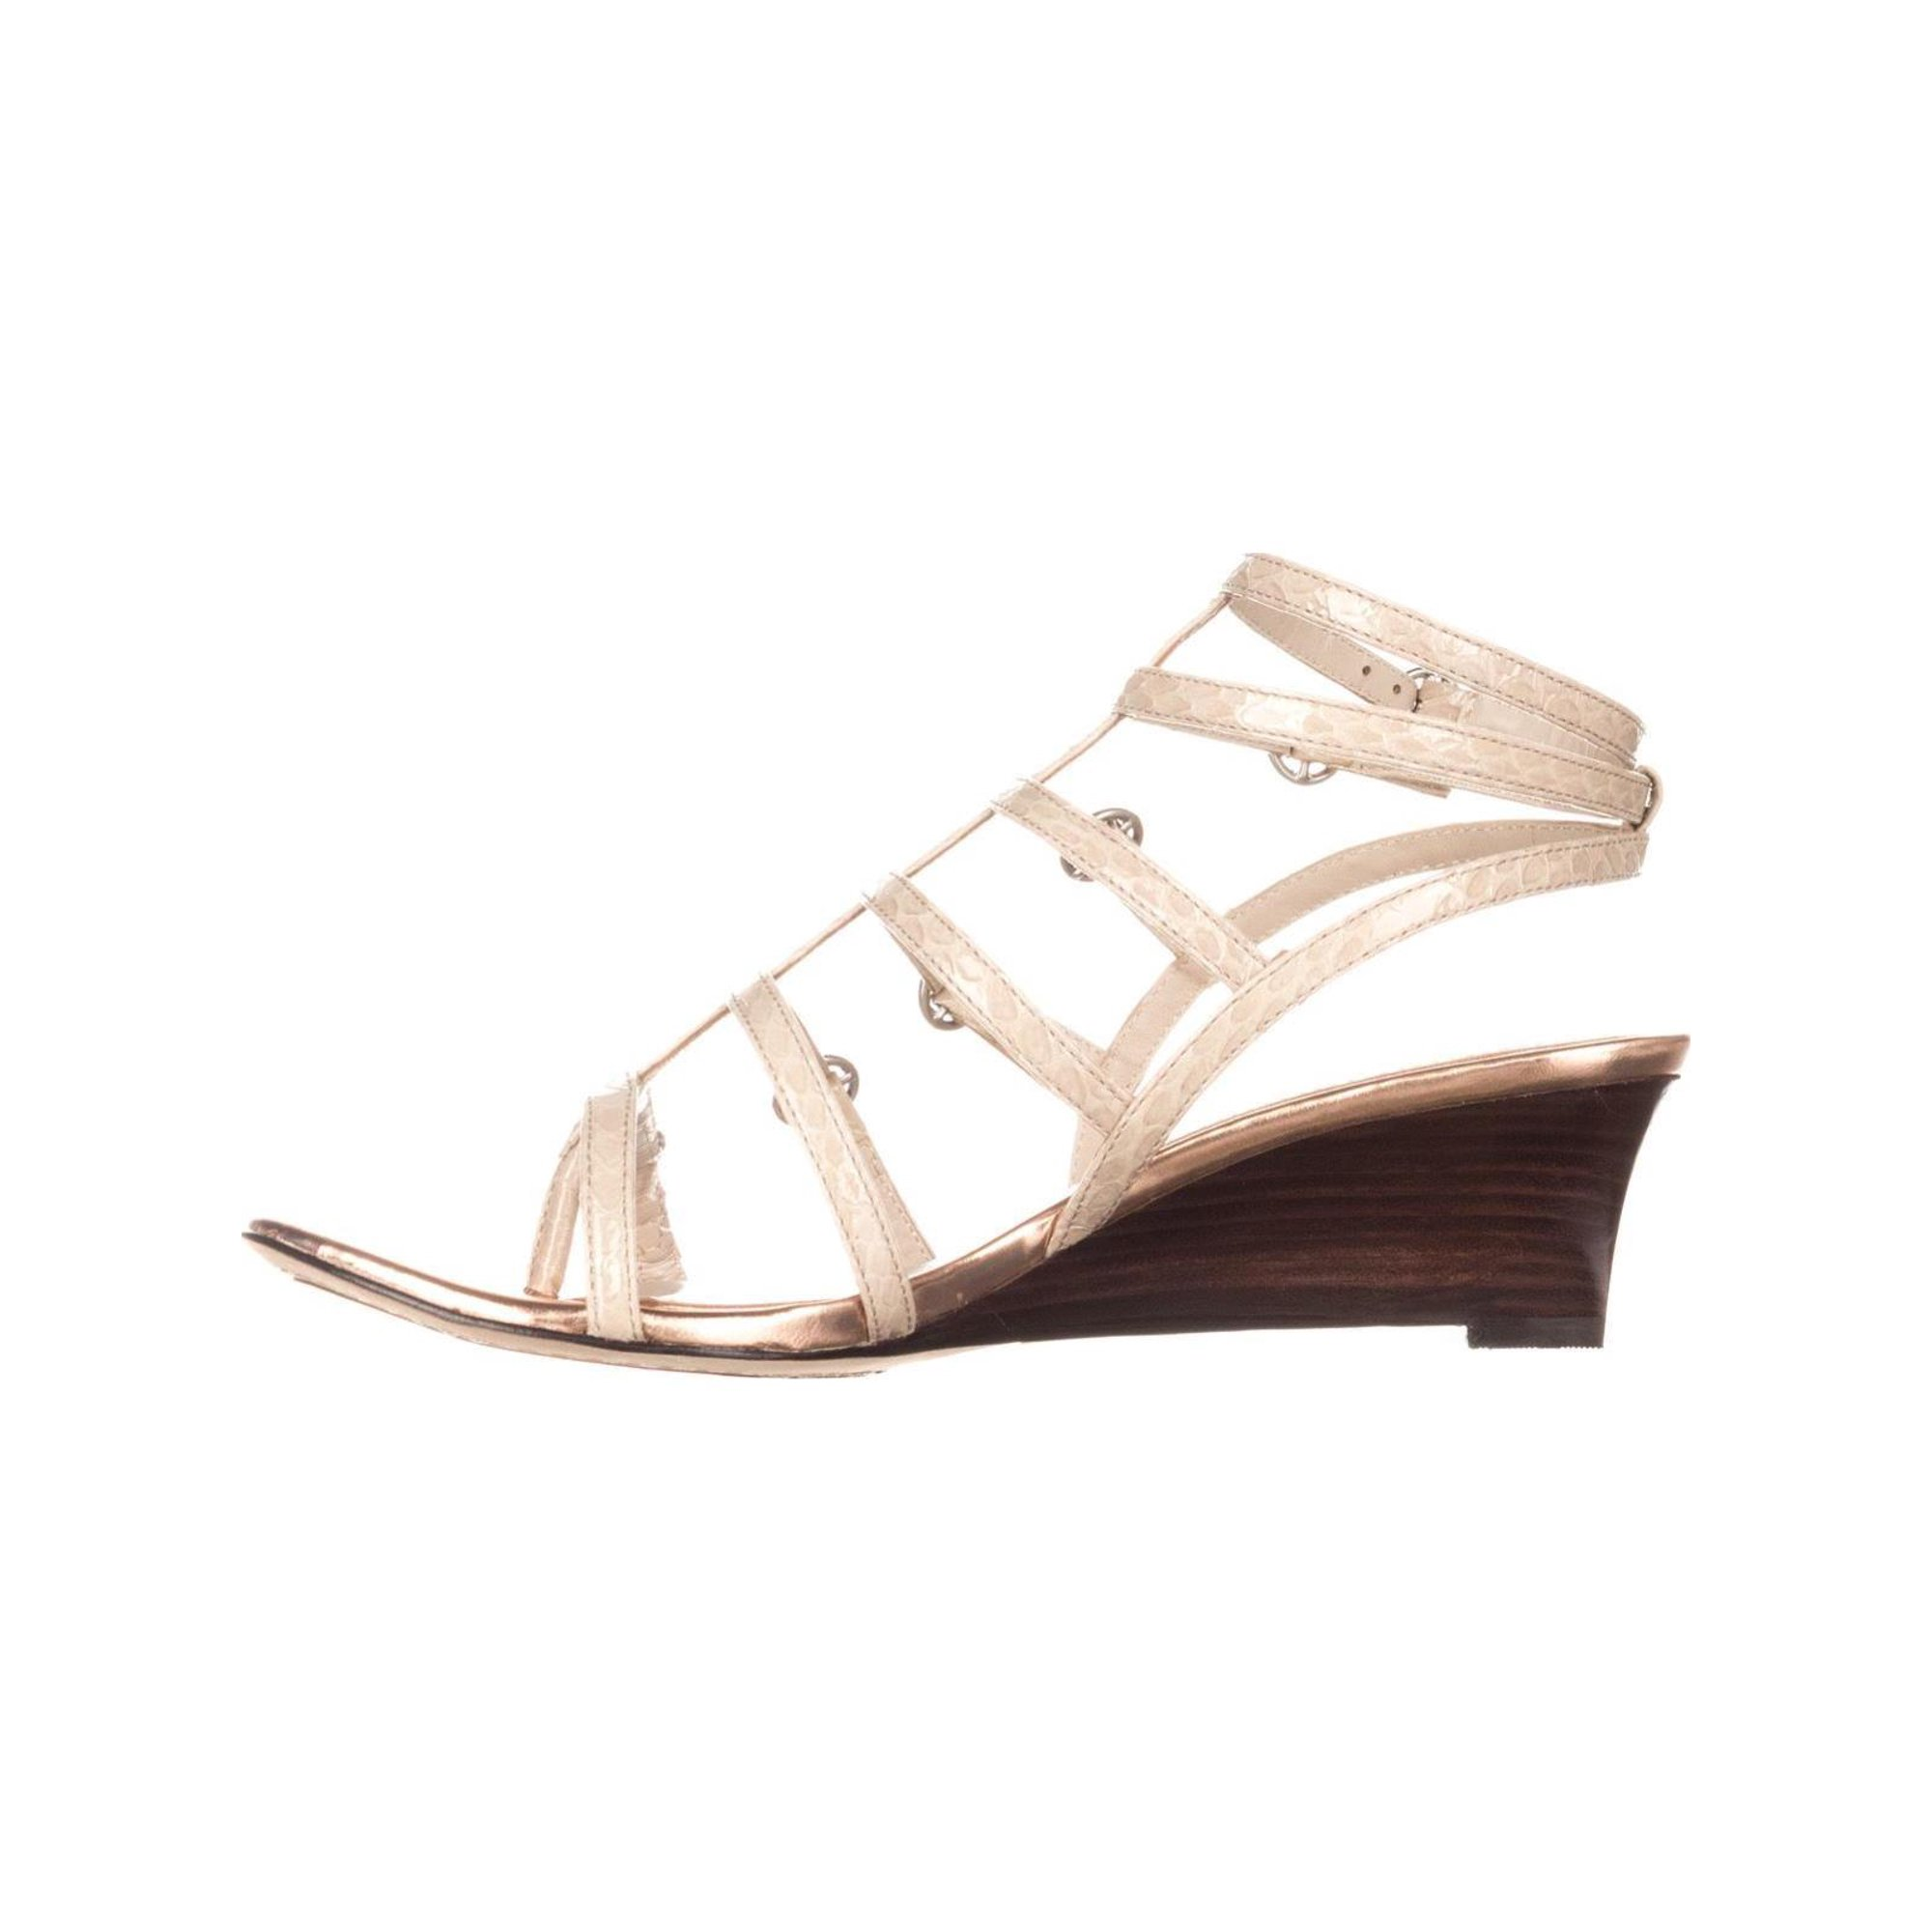 a3e9ba7c865e Elie Tahari Gladiator Wedge Sandals